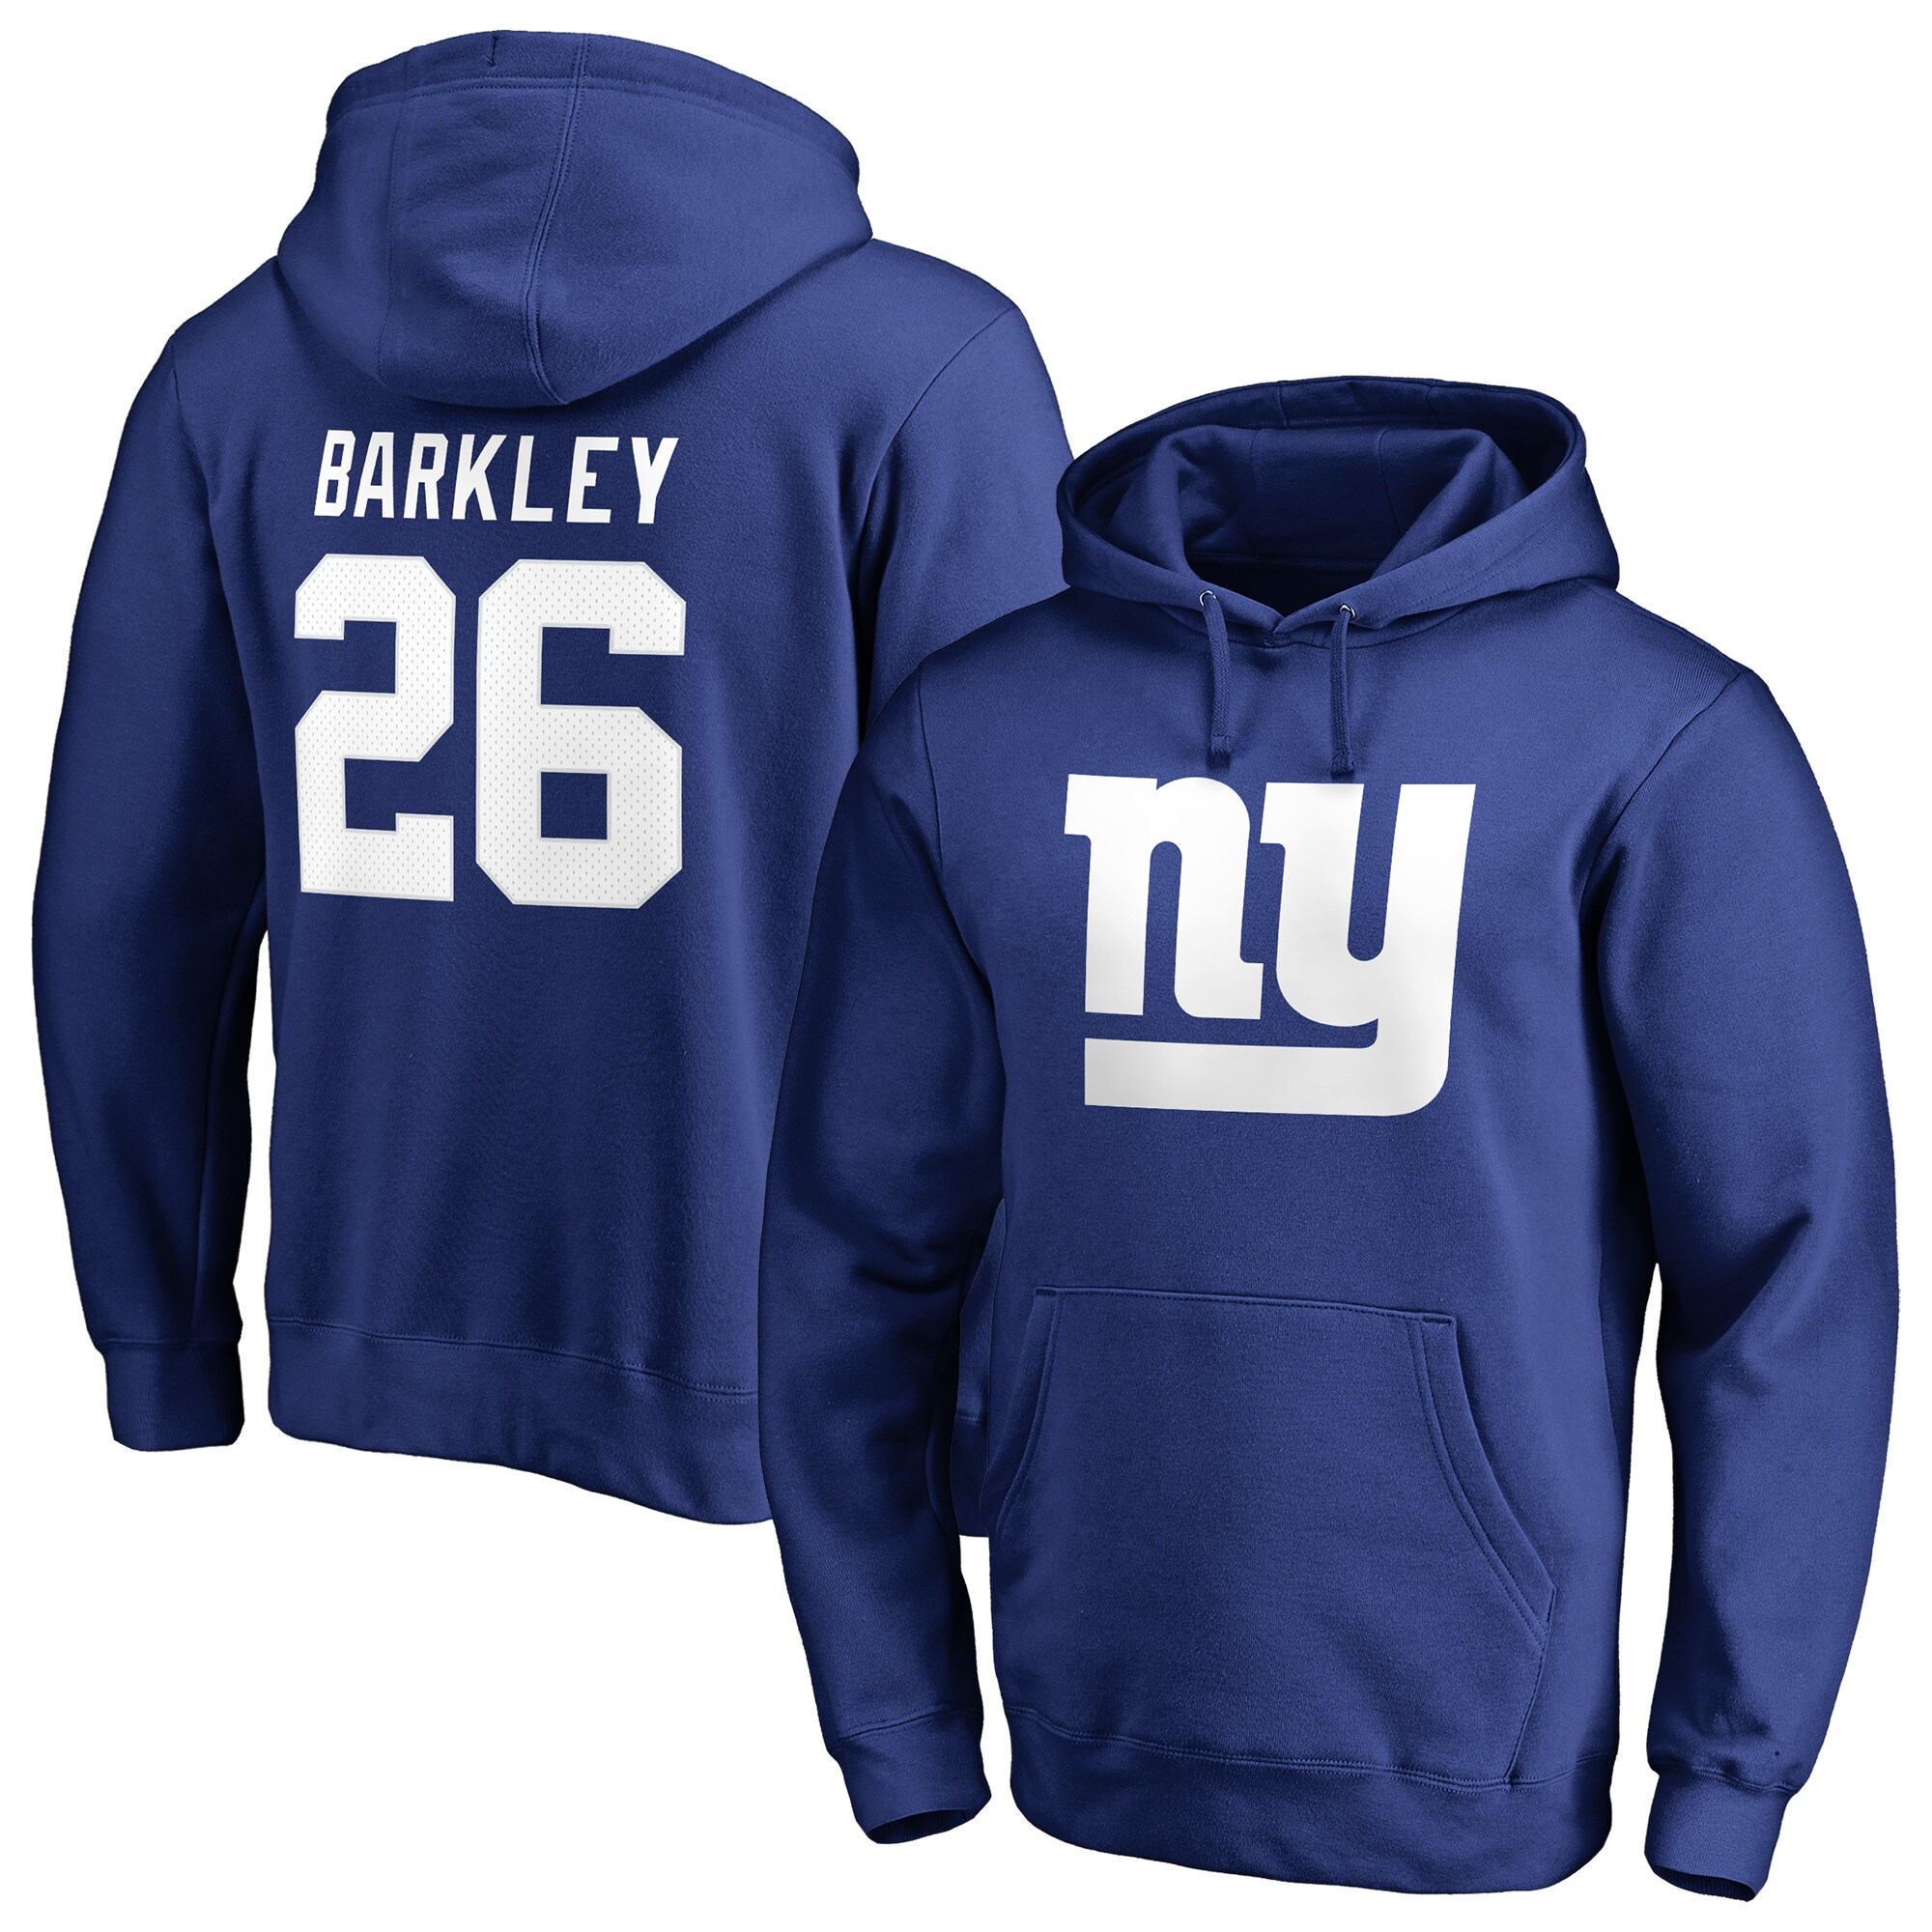 Saquon Barkley New York Giants NFL Pro Line by Fanatics Branded Team Logo Player Icon Name & Number Pullover Hoodie - Royal